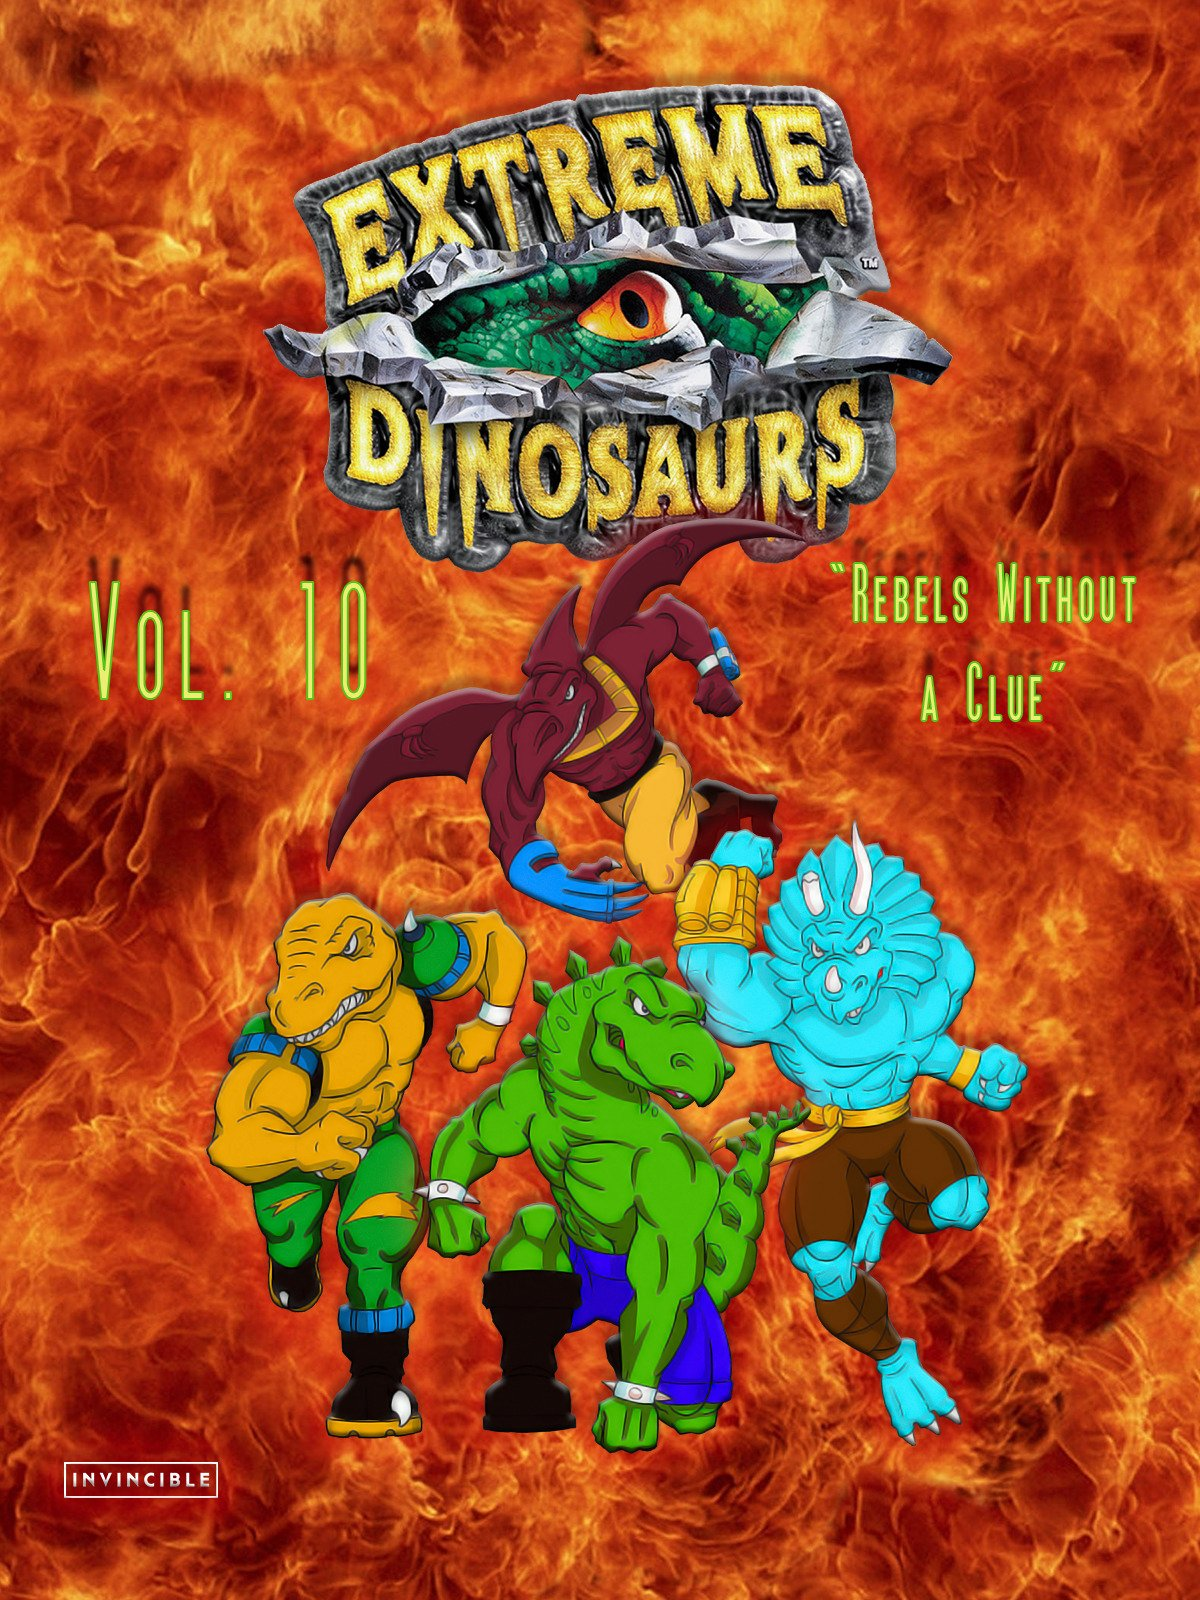 Extreme Dinosaurs Vol. 10Rebels Without a Clue